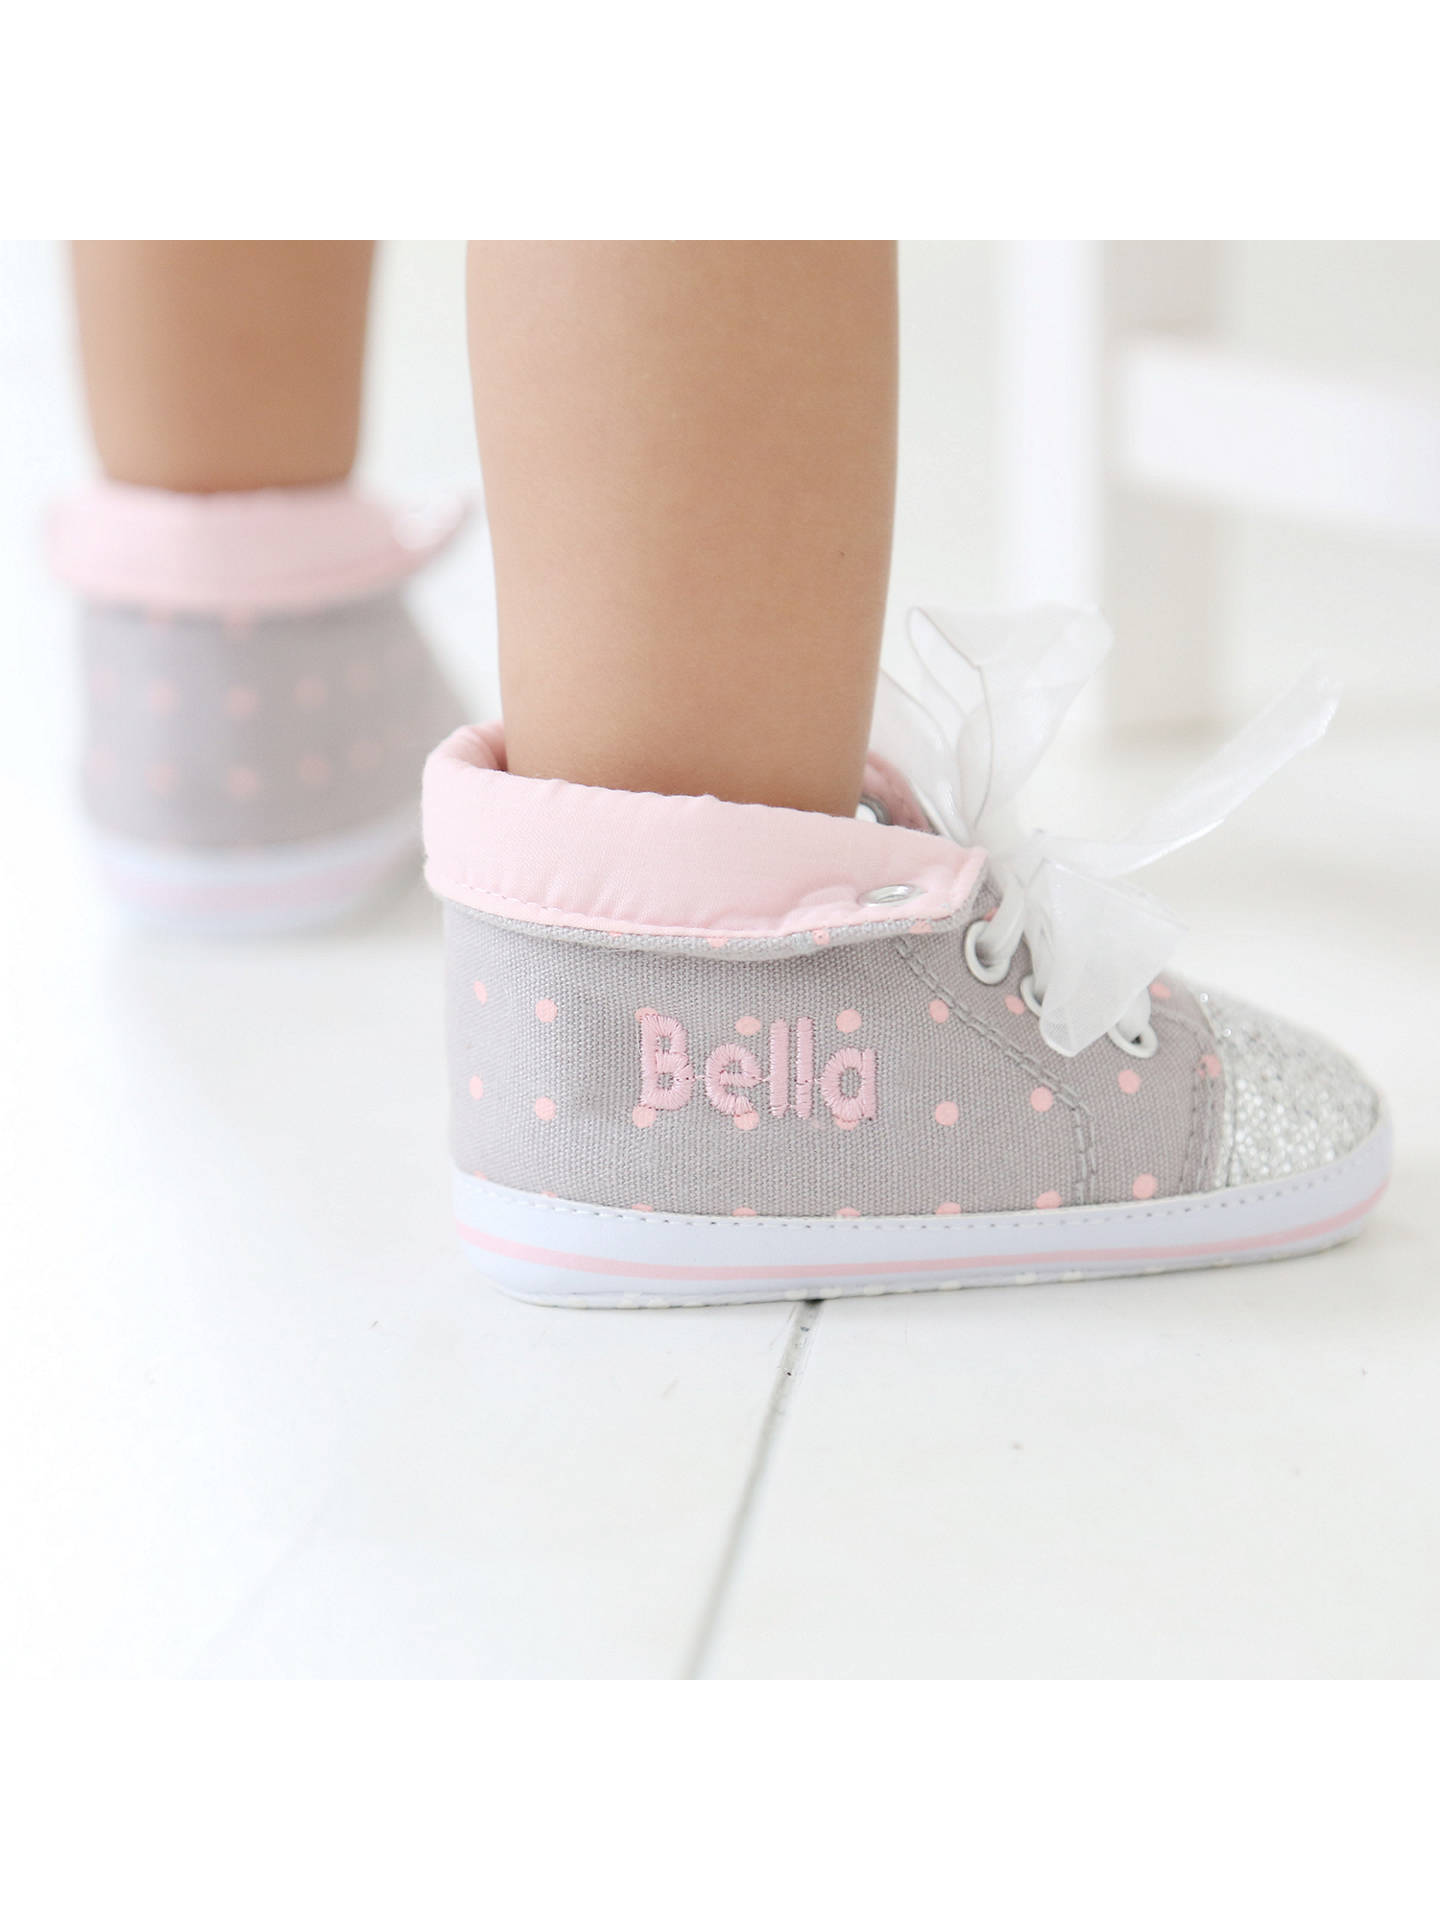 BuyMy 1st Years Baby Personalised Glitter Hi-top Trainers, Multi, 0-6 months Online at johnlewis.com